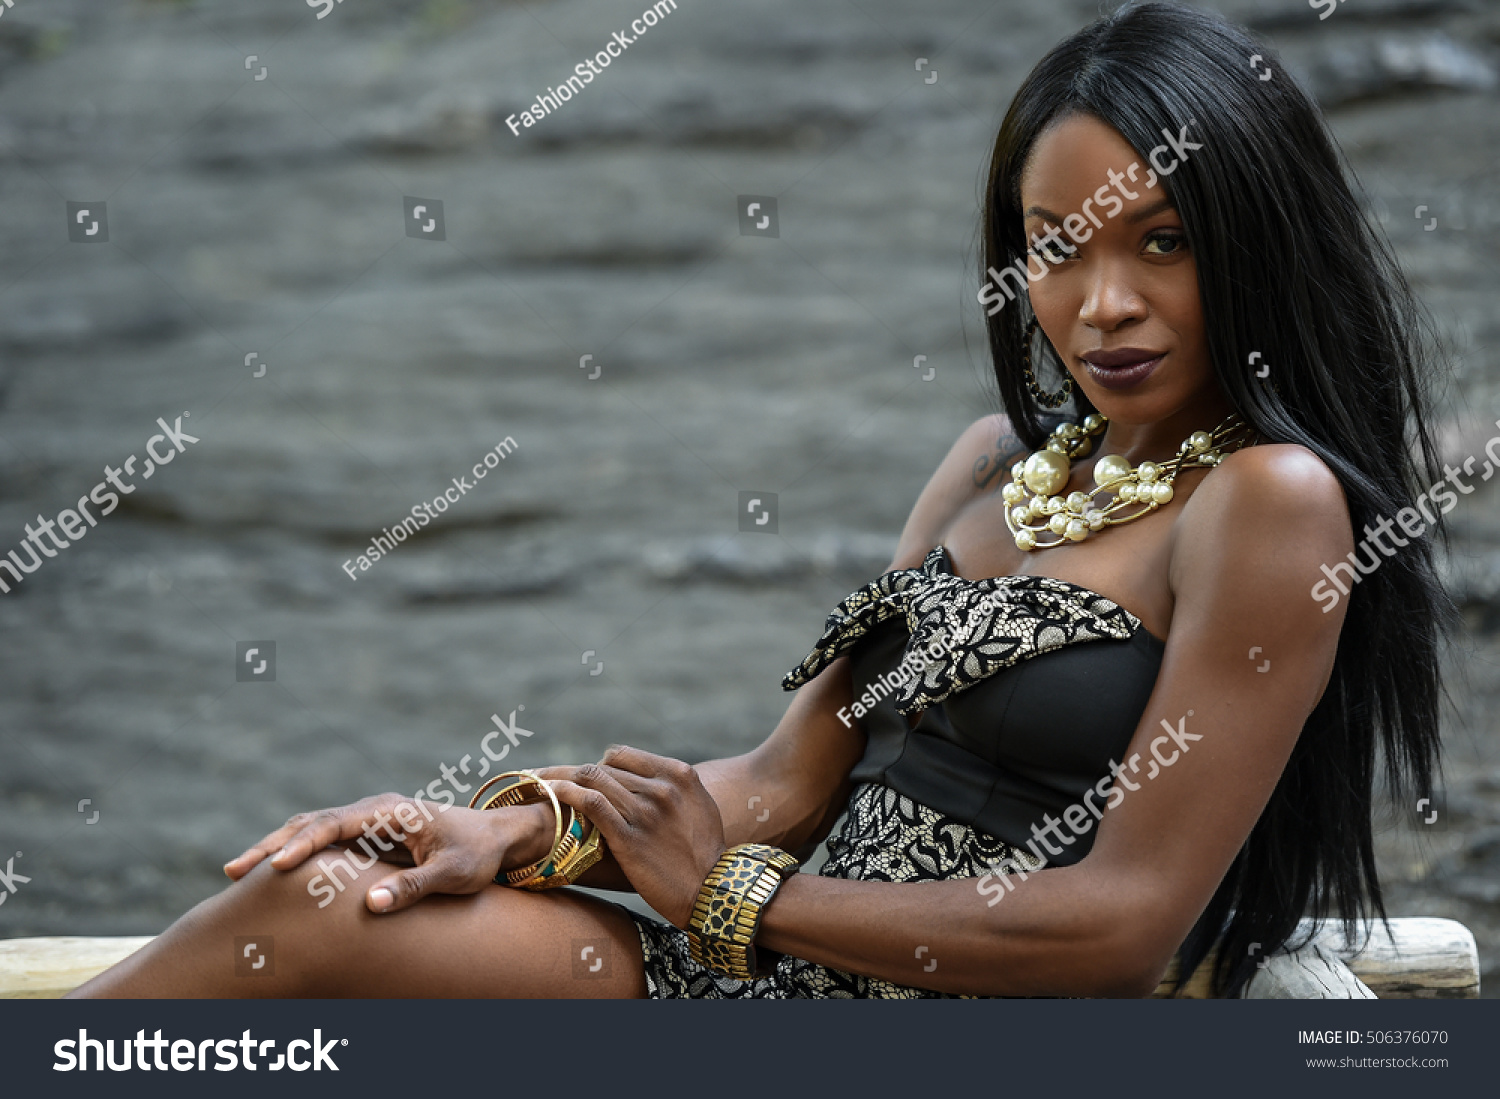 235c3befefb Exotic looking African American woman posing in front of camera wearing  black mini dress and jewellery